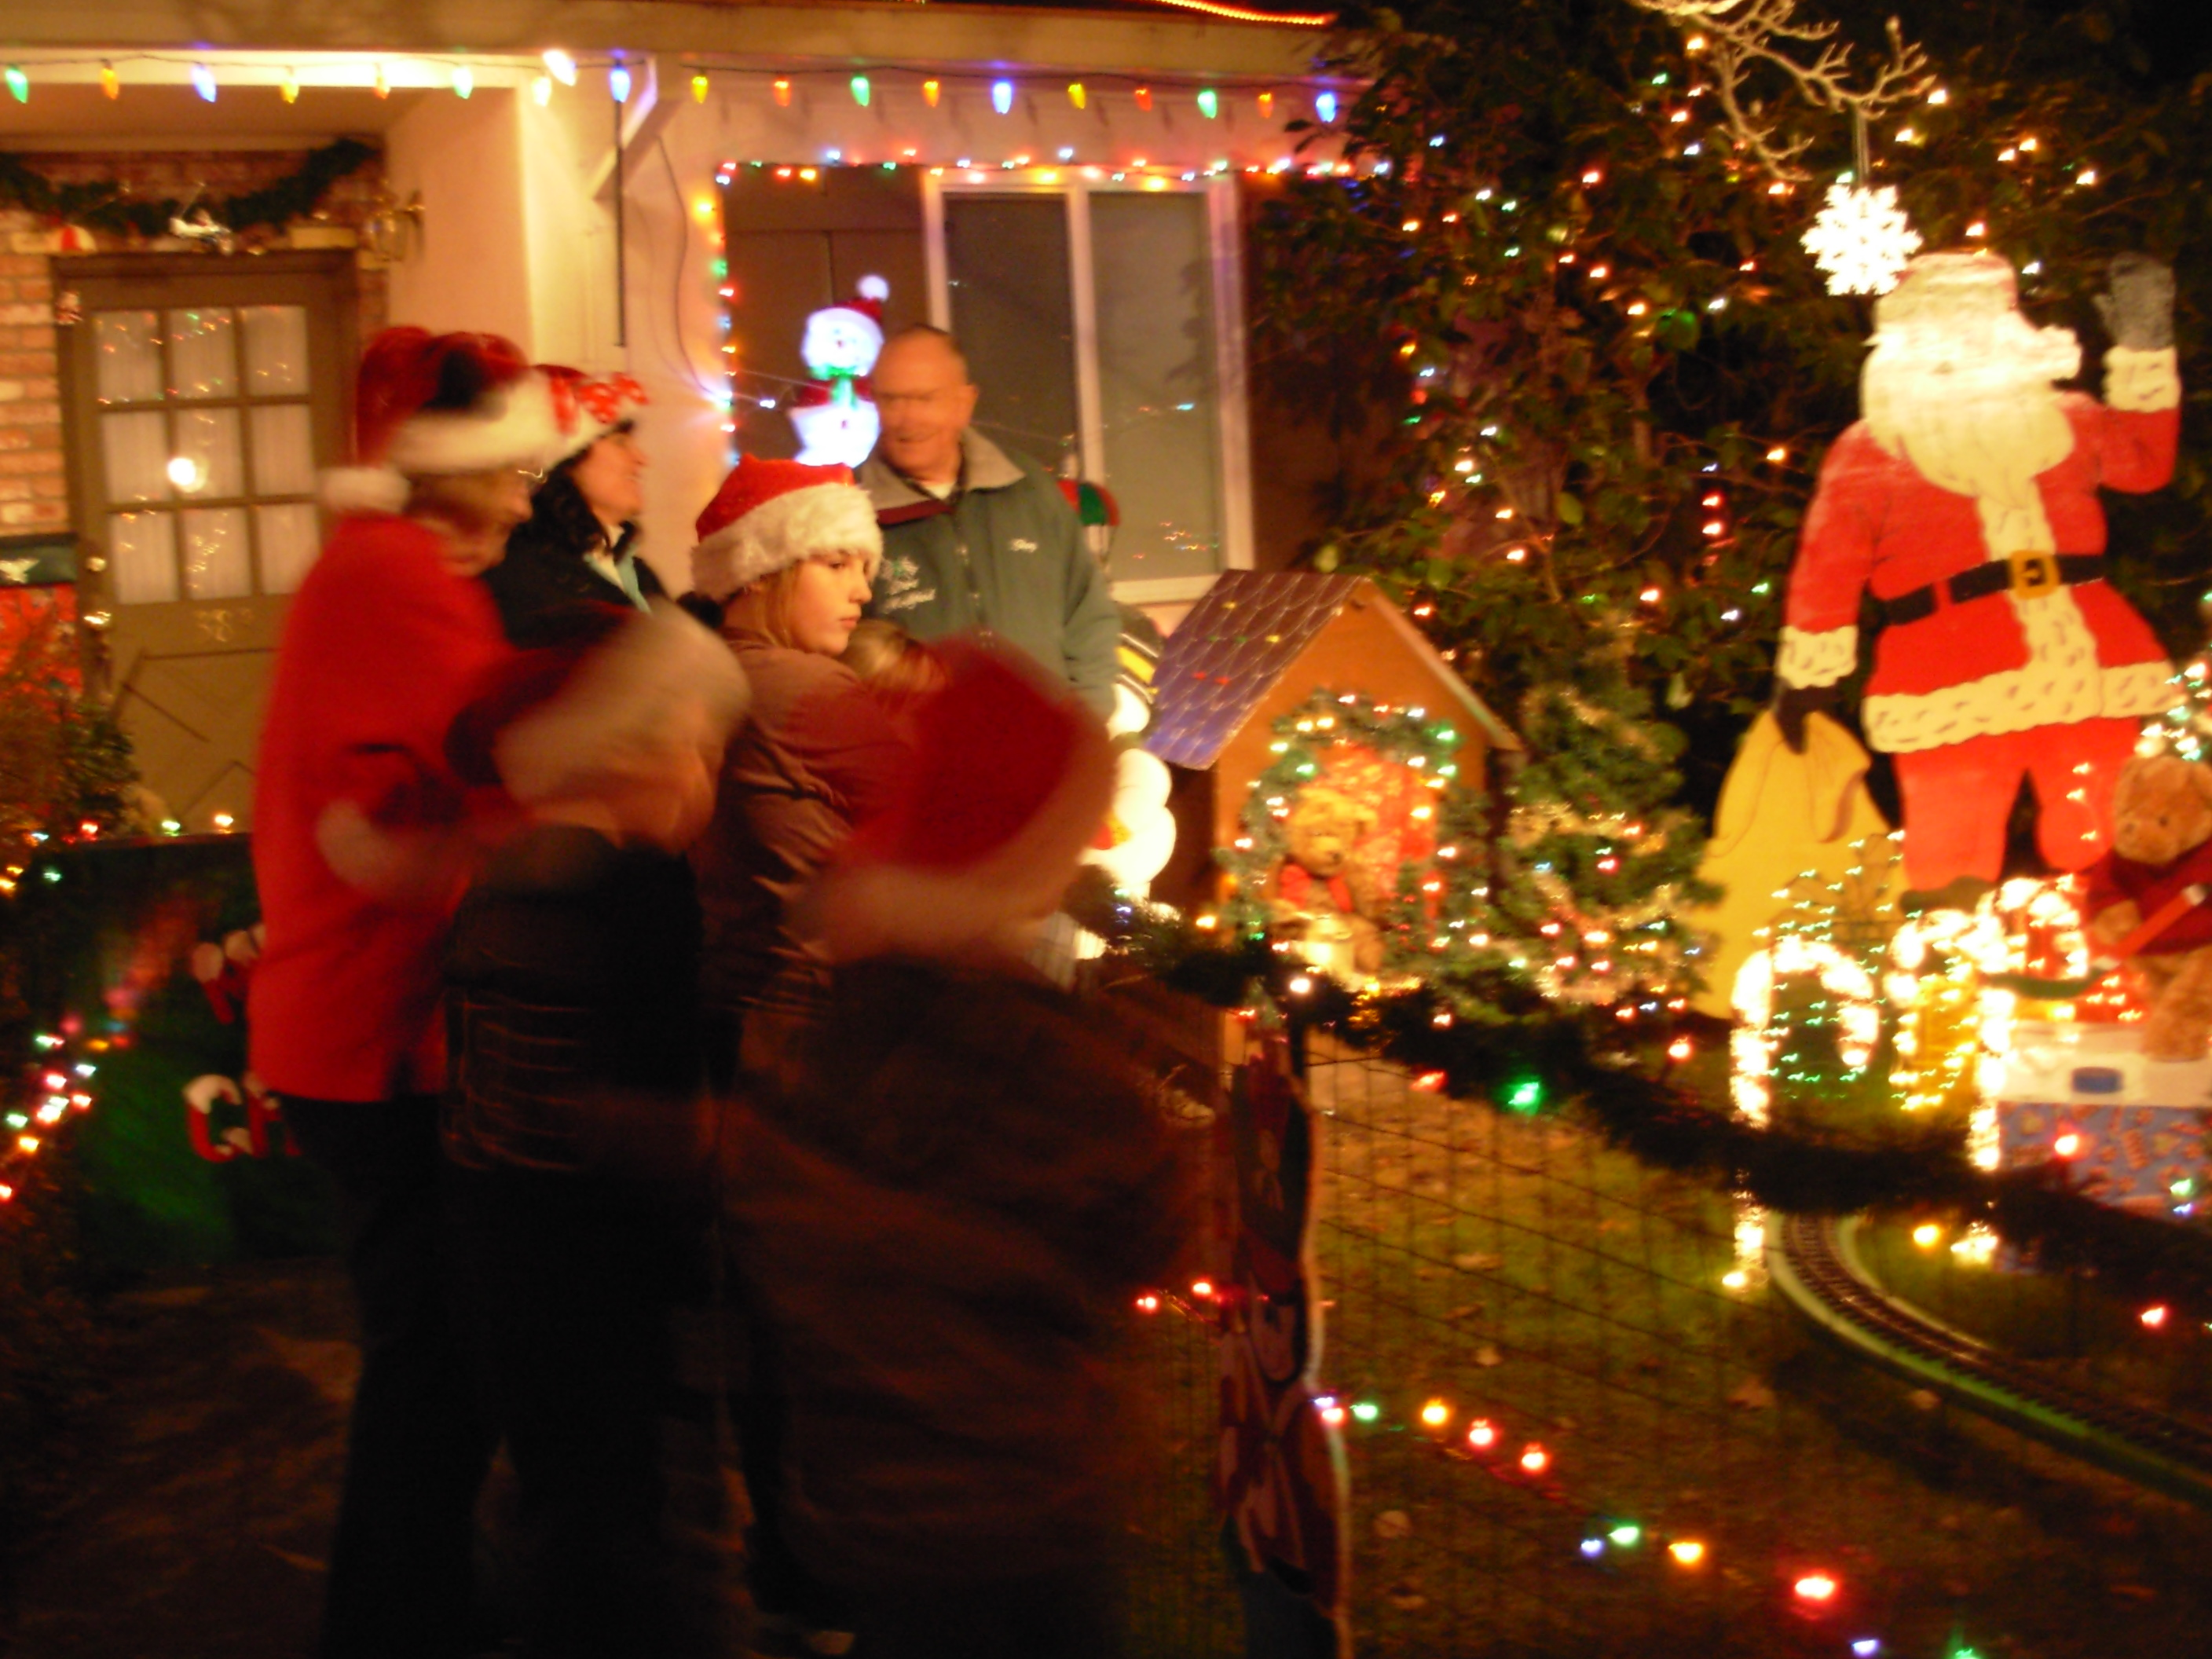 Christmas Light Displays Archives - Slow Family